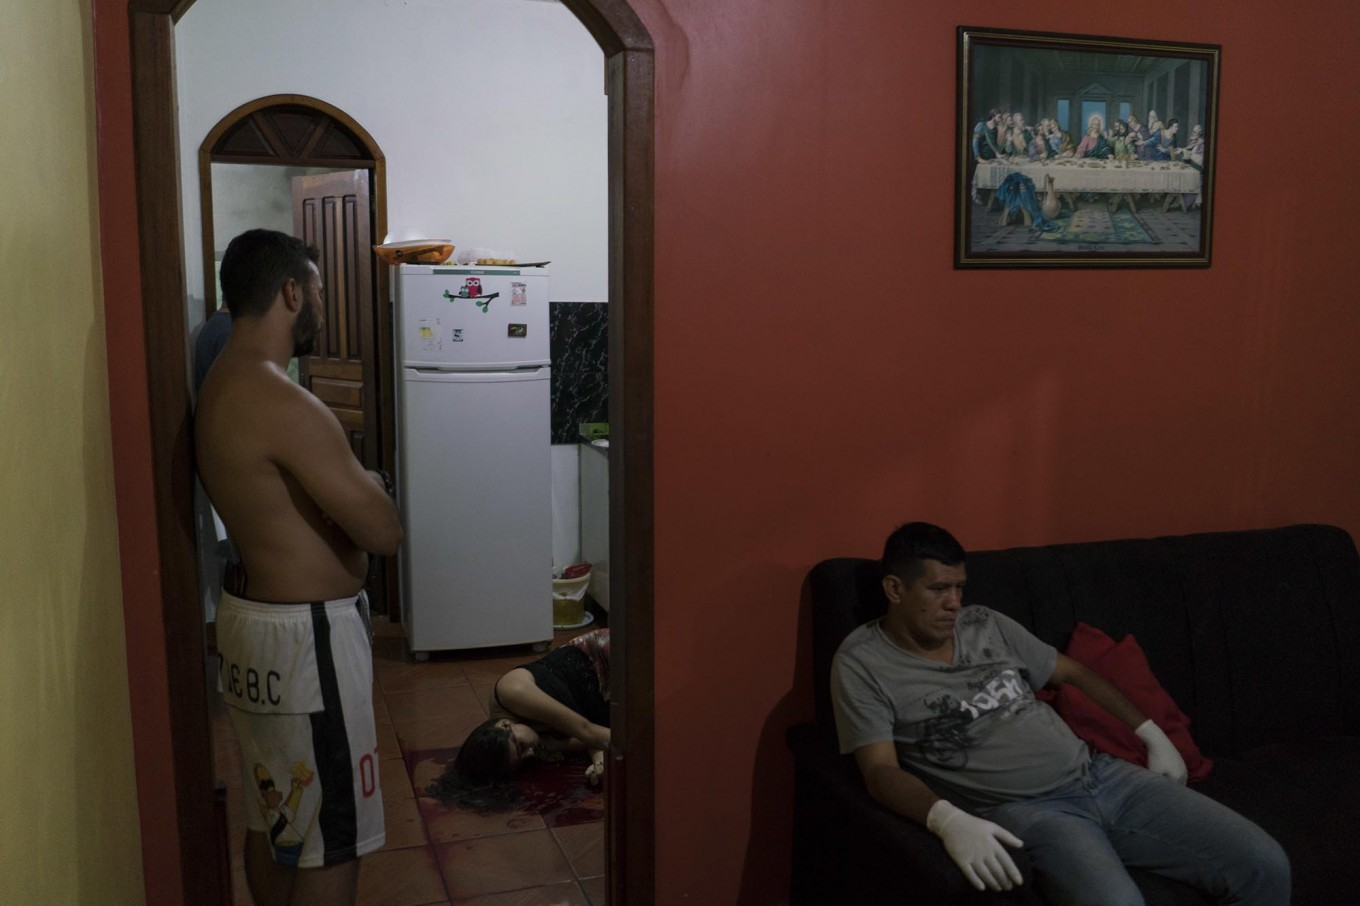 In this Feb. 5, 2017 photo, a gloved morgue worker rests at a home where the body of a woman lies on the kitchen floor after she was shot to death under unclear circumstances in Manaus, Brazil. The increasingly violent city is a thoroughfare for drug trafficking across South America, where authorities suspect most murders are gang related. AP Photo/Felipe Dana